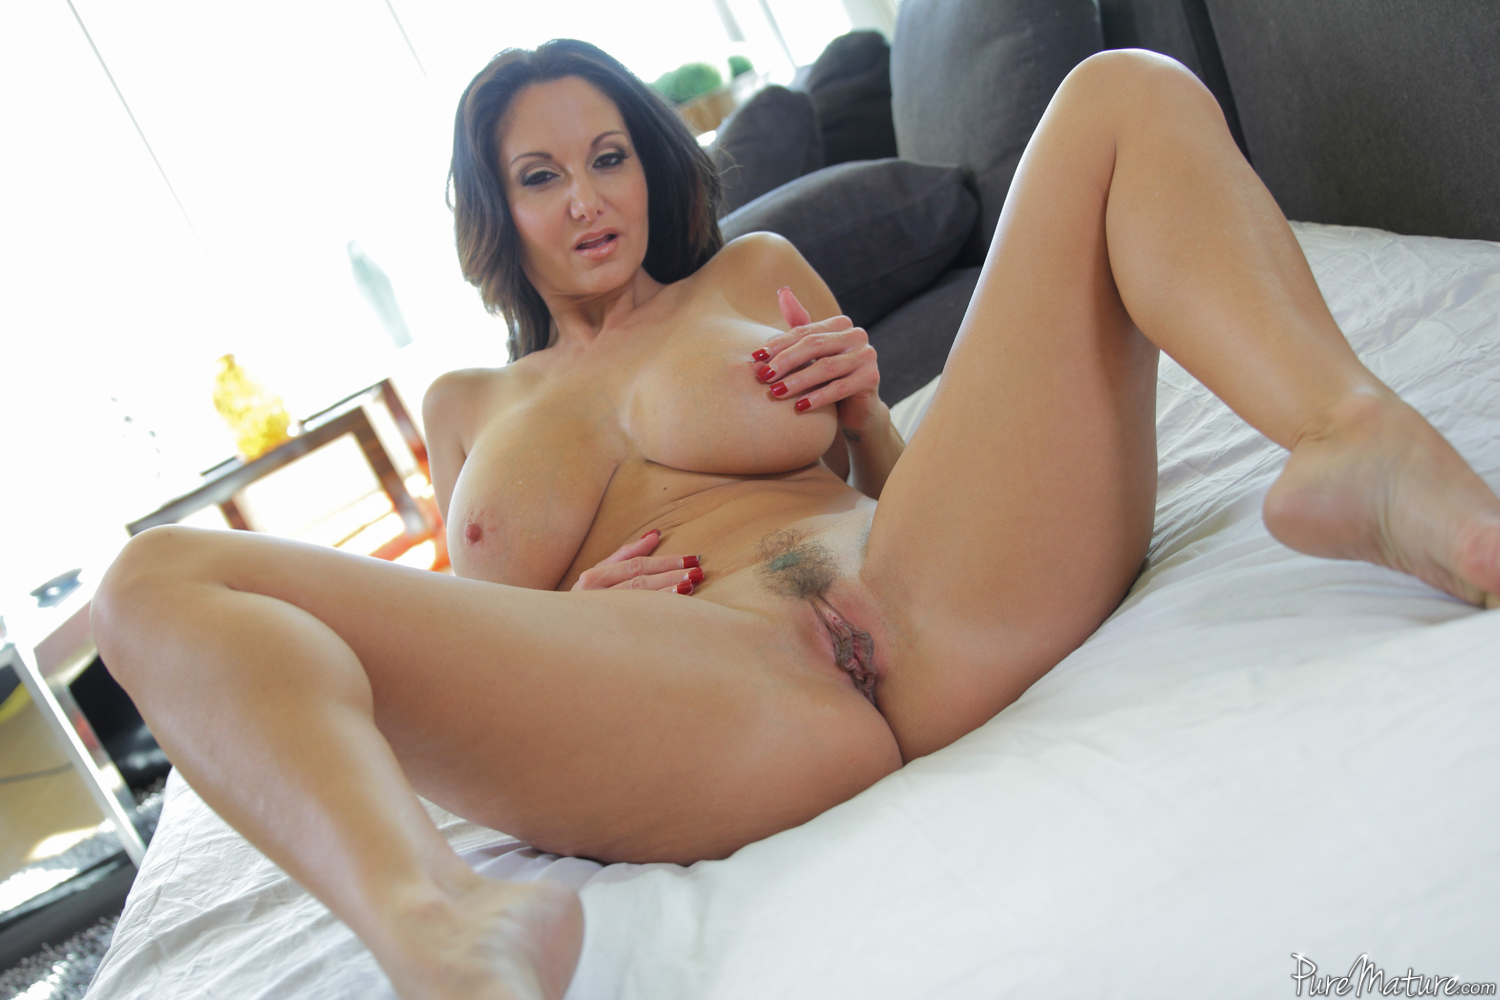 Ava taylor porn addicted not daughter - 1 part 2